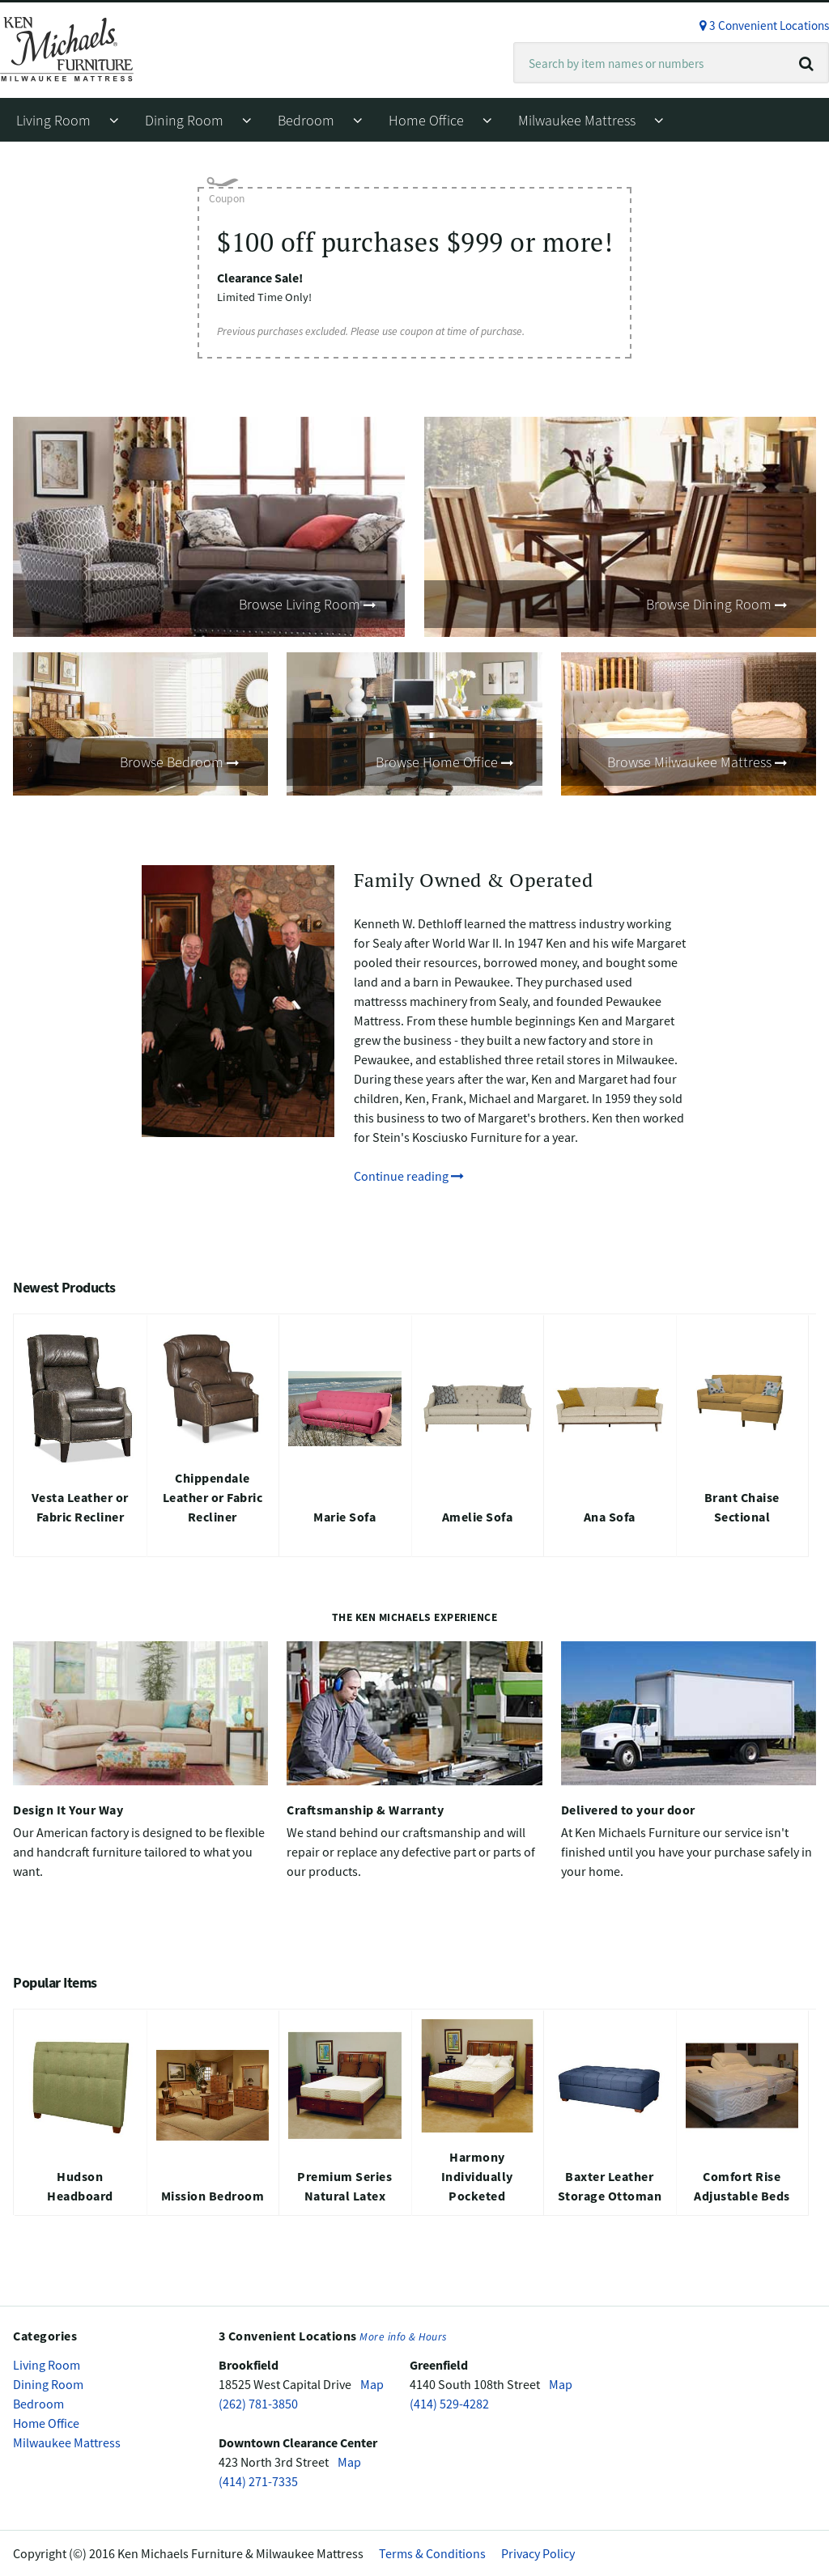 Merveilleux Ken Michaels Furniture Website History